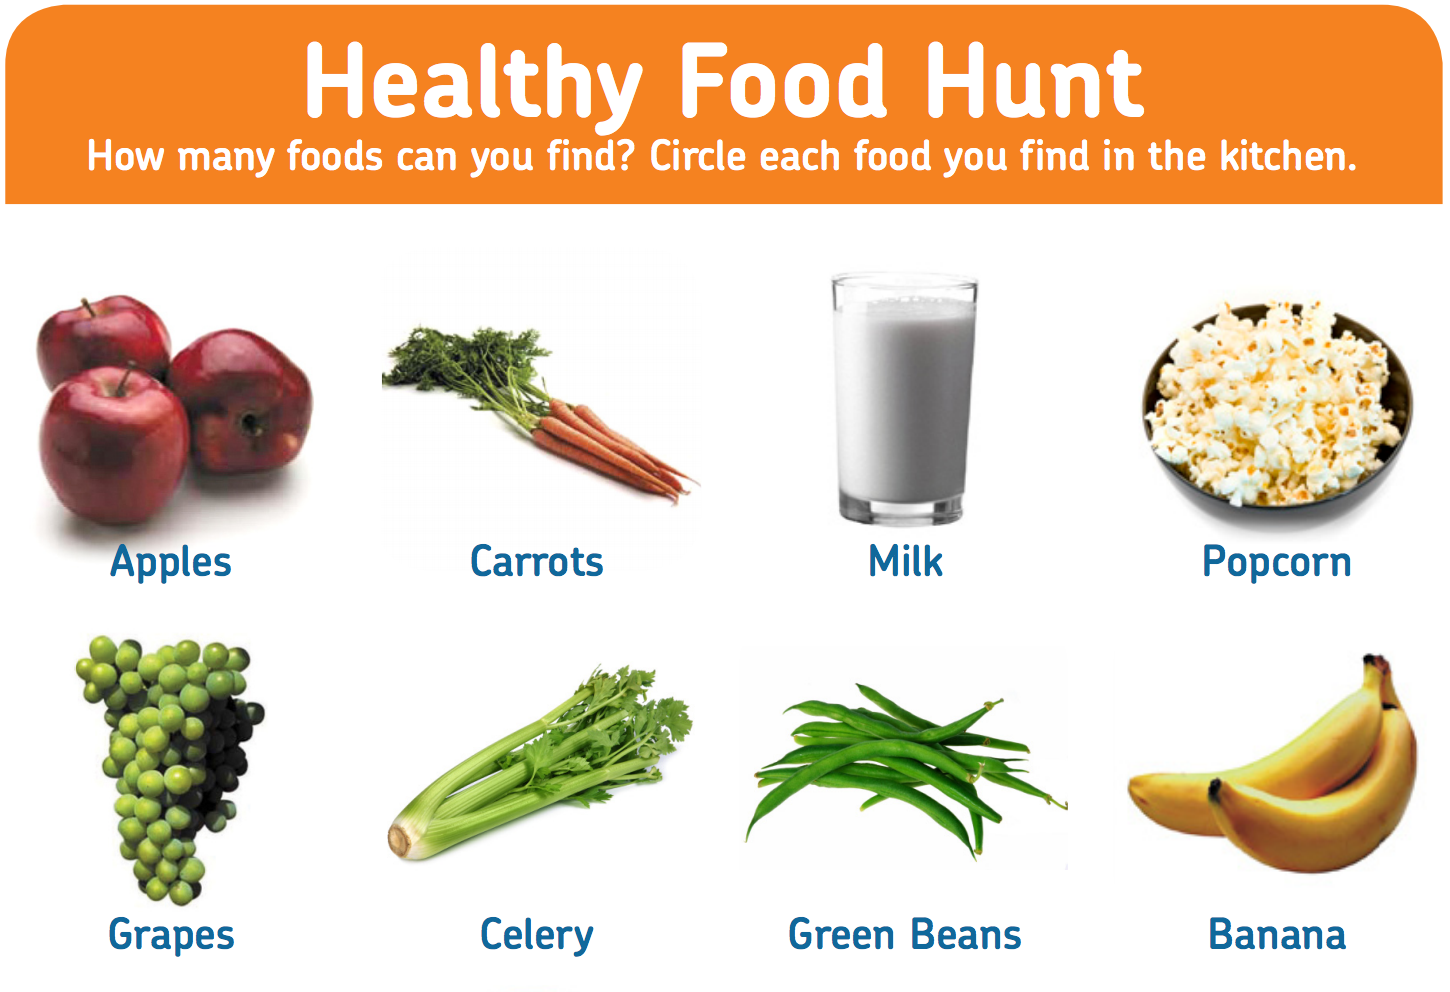 Teach Your Students Which Foods Are Healthy With This Fun Game